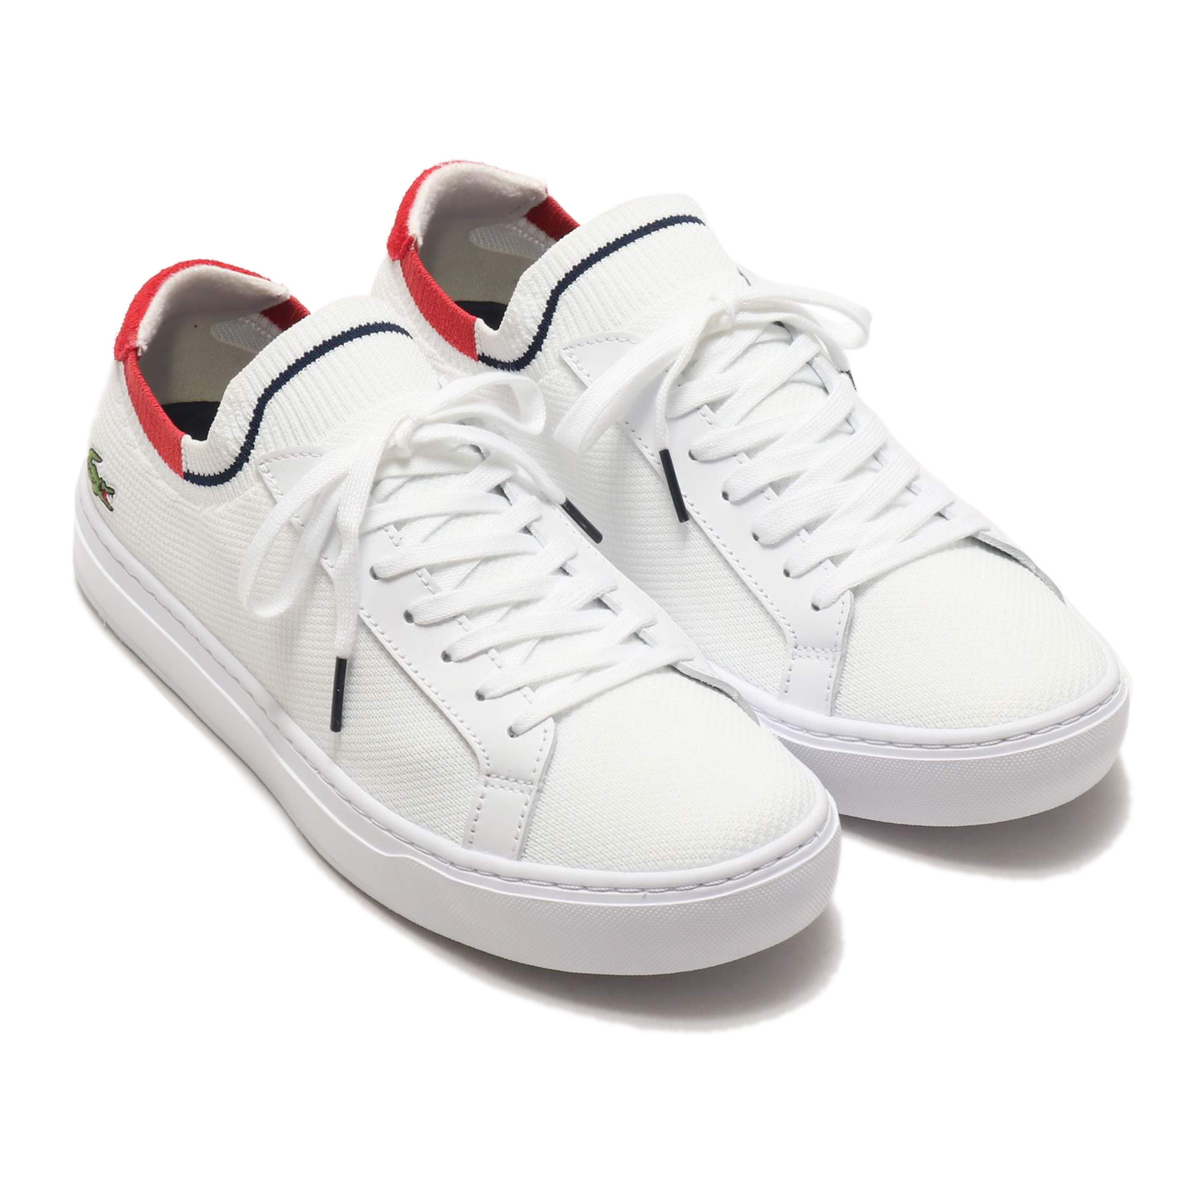 LACOSTE LA PIQUEE 120 1(ラコステ ラピケ 120 1)WHT/RED/NVY【メンズ スニーカー】20SP-I